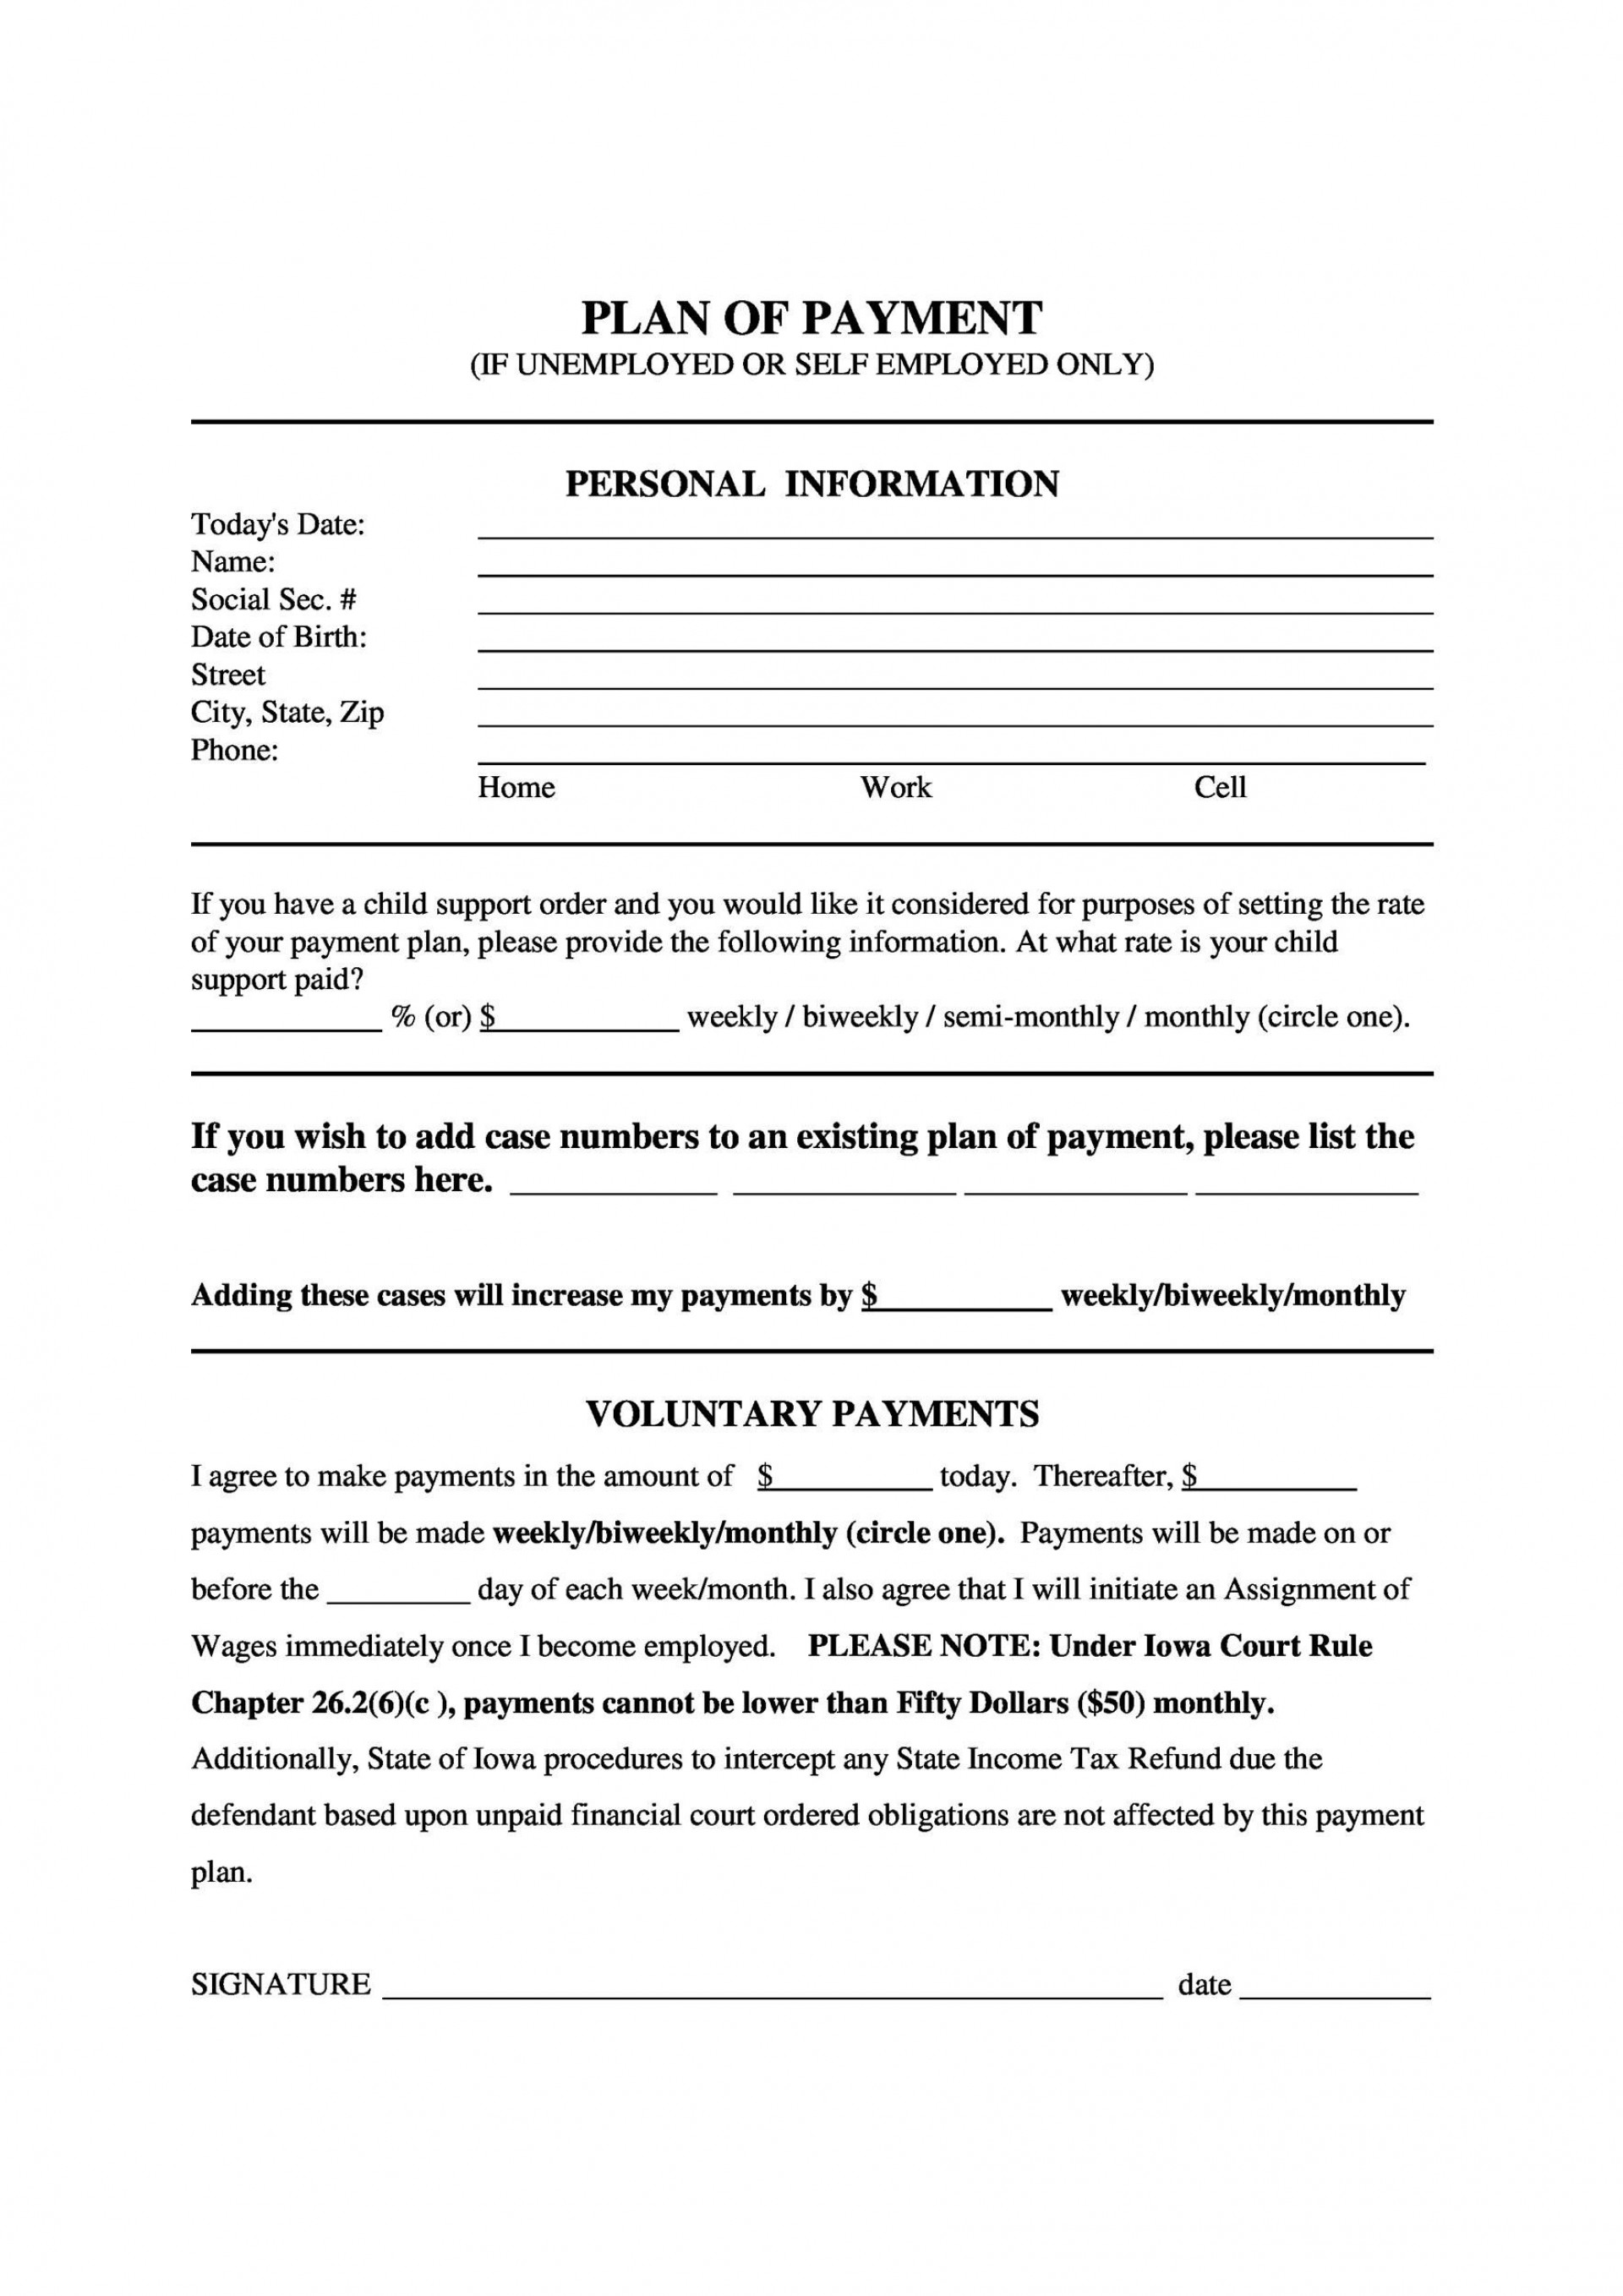 007 Striking Installment Payment Contract Template Image  Car Agreement Simple Monthly1920